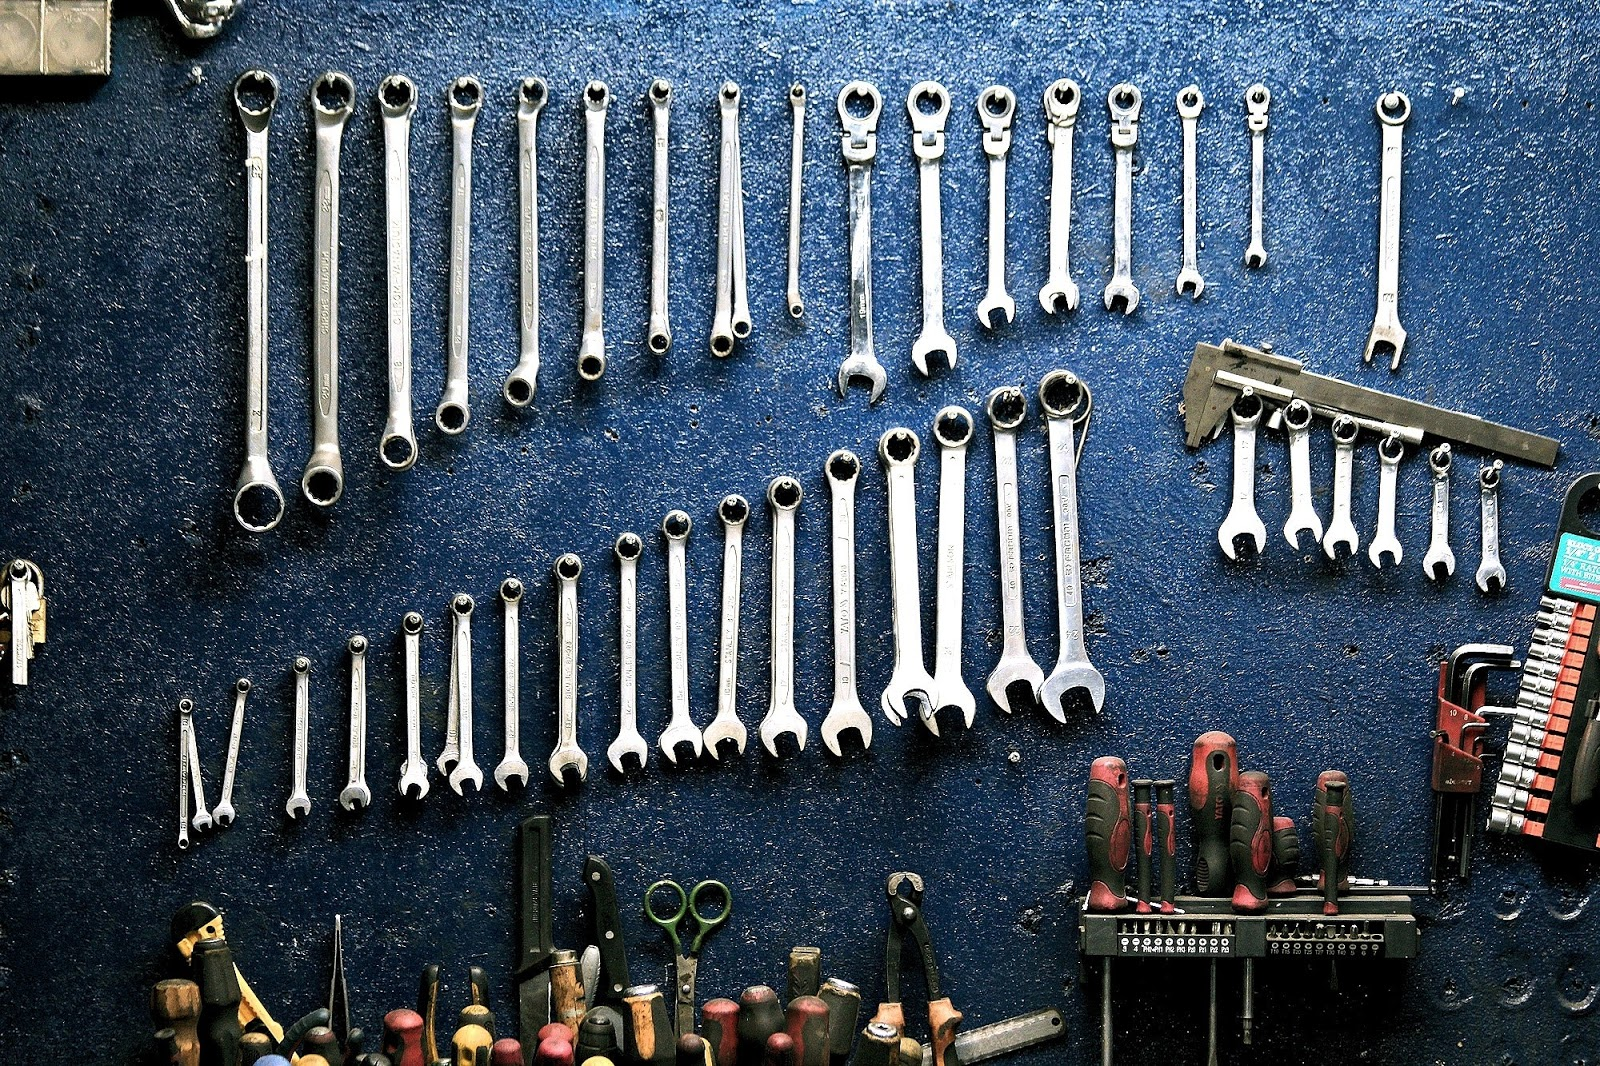 Wall of hanging tools